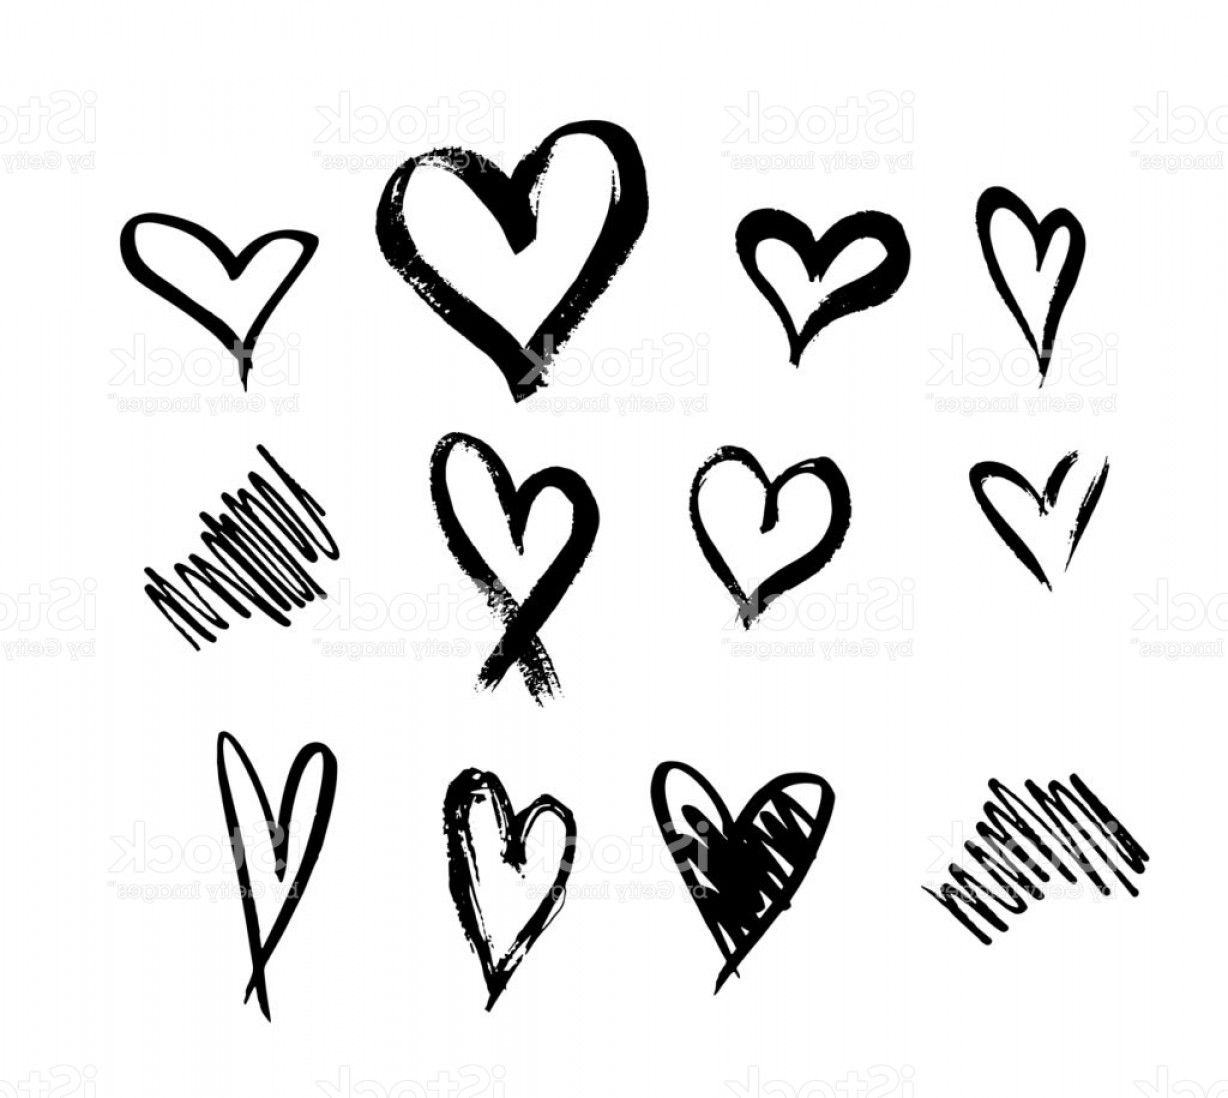 1228x1098 Vector Hand Drawn Heart Outline Arenawp